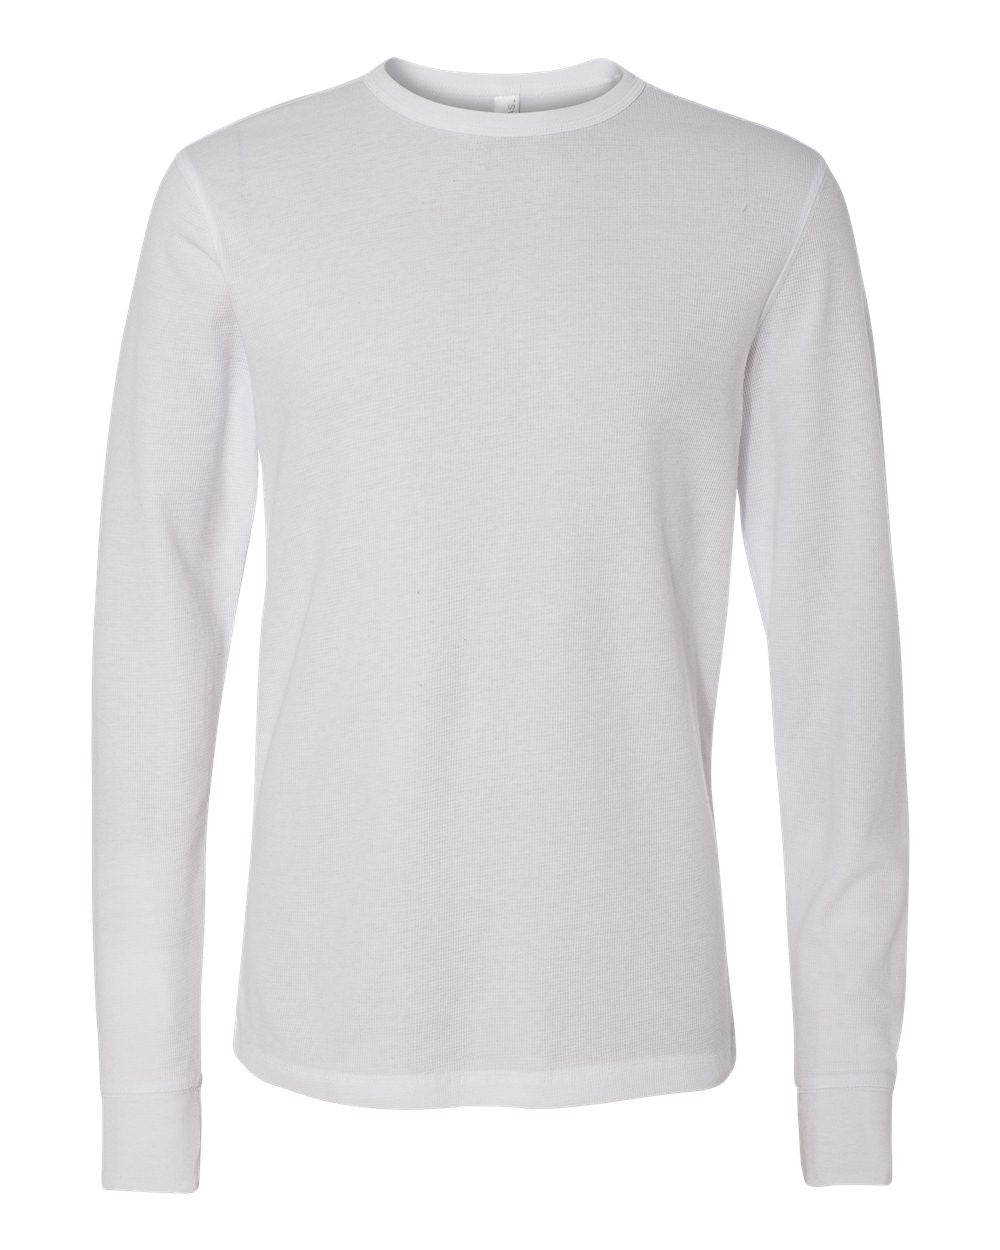 3500 - Long Sleeve Thermal T-Shirt